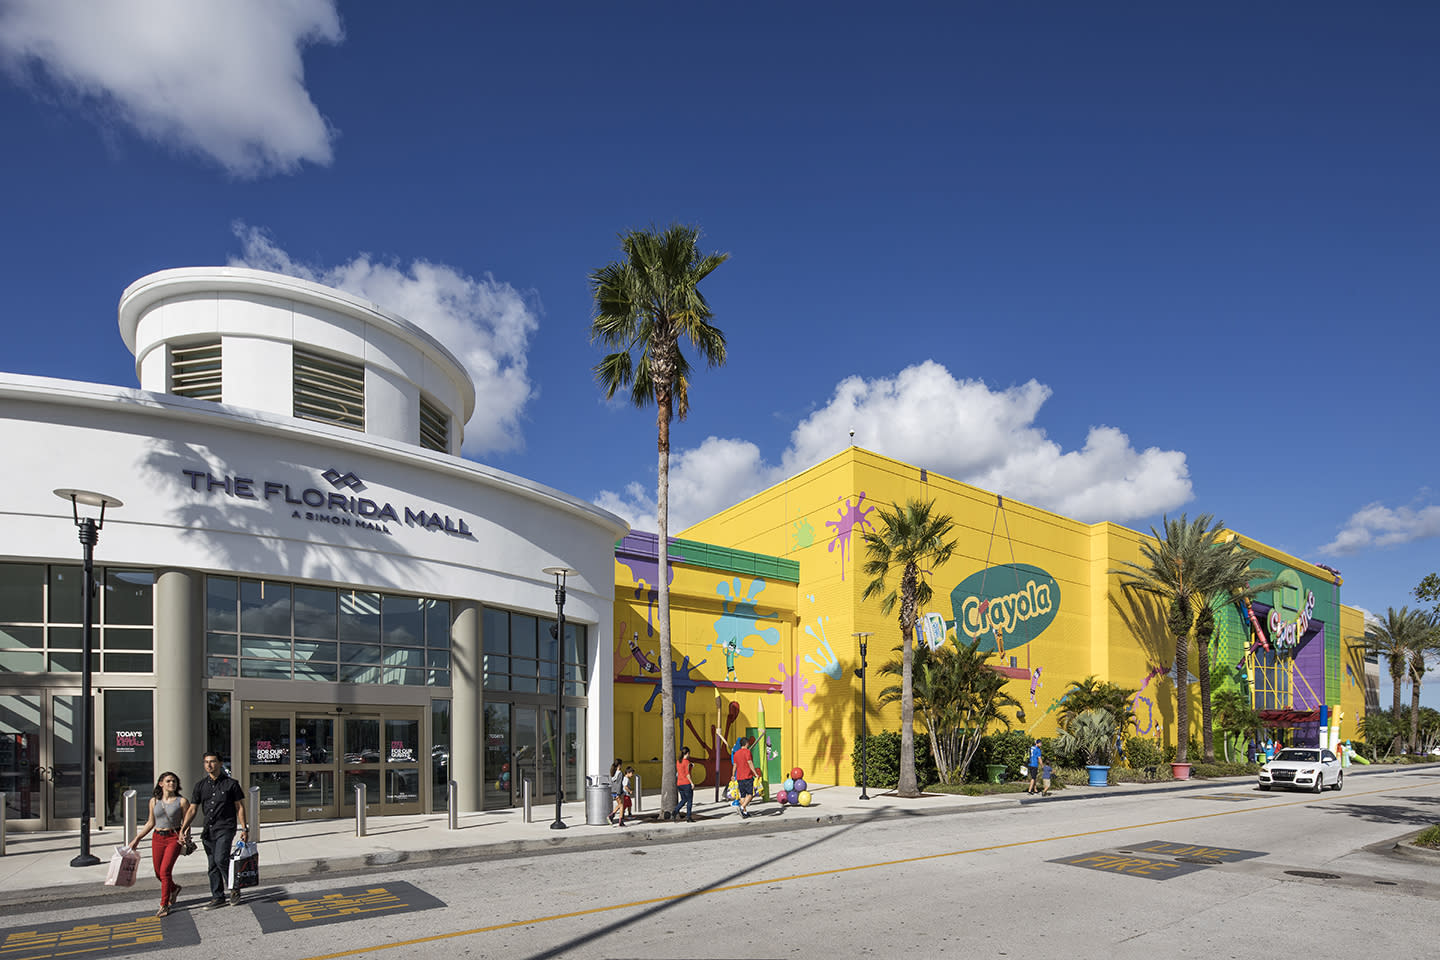 The Florida Mall entrance and Crayola store in Orlando, FL